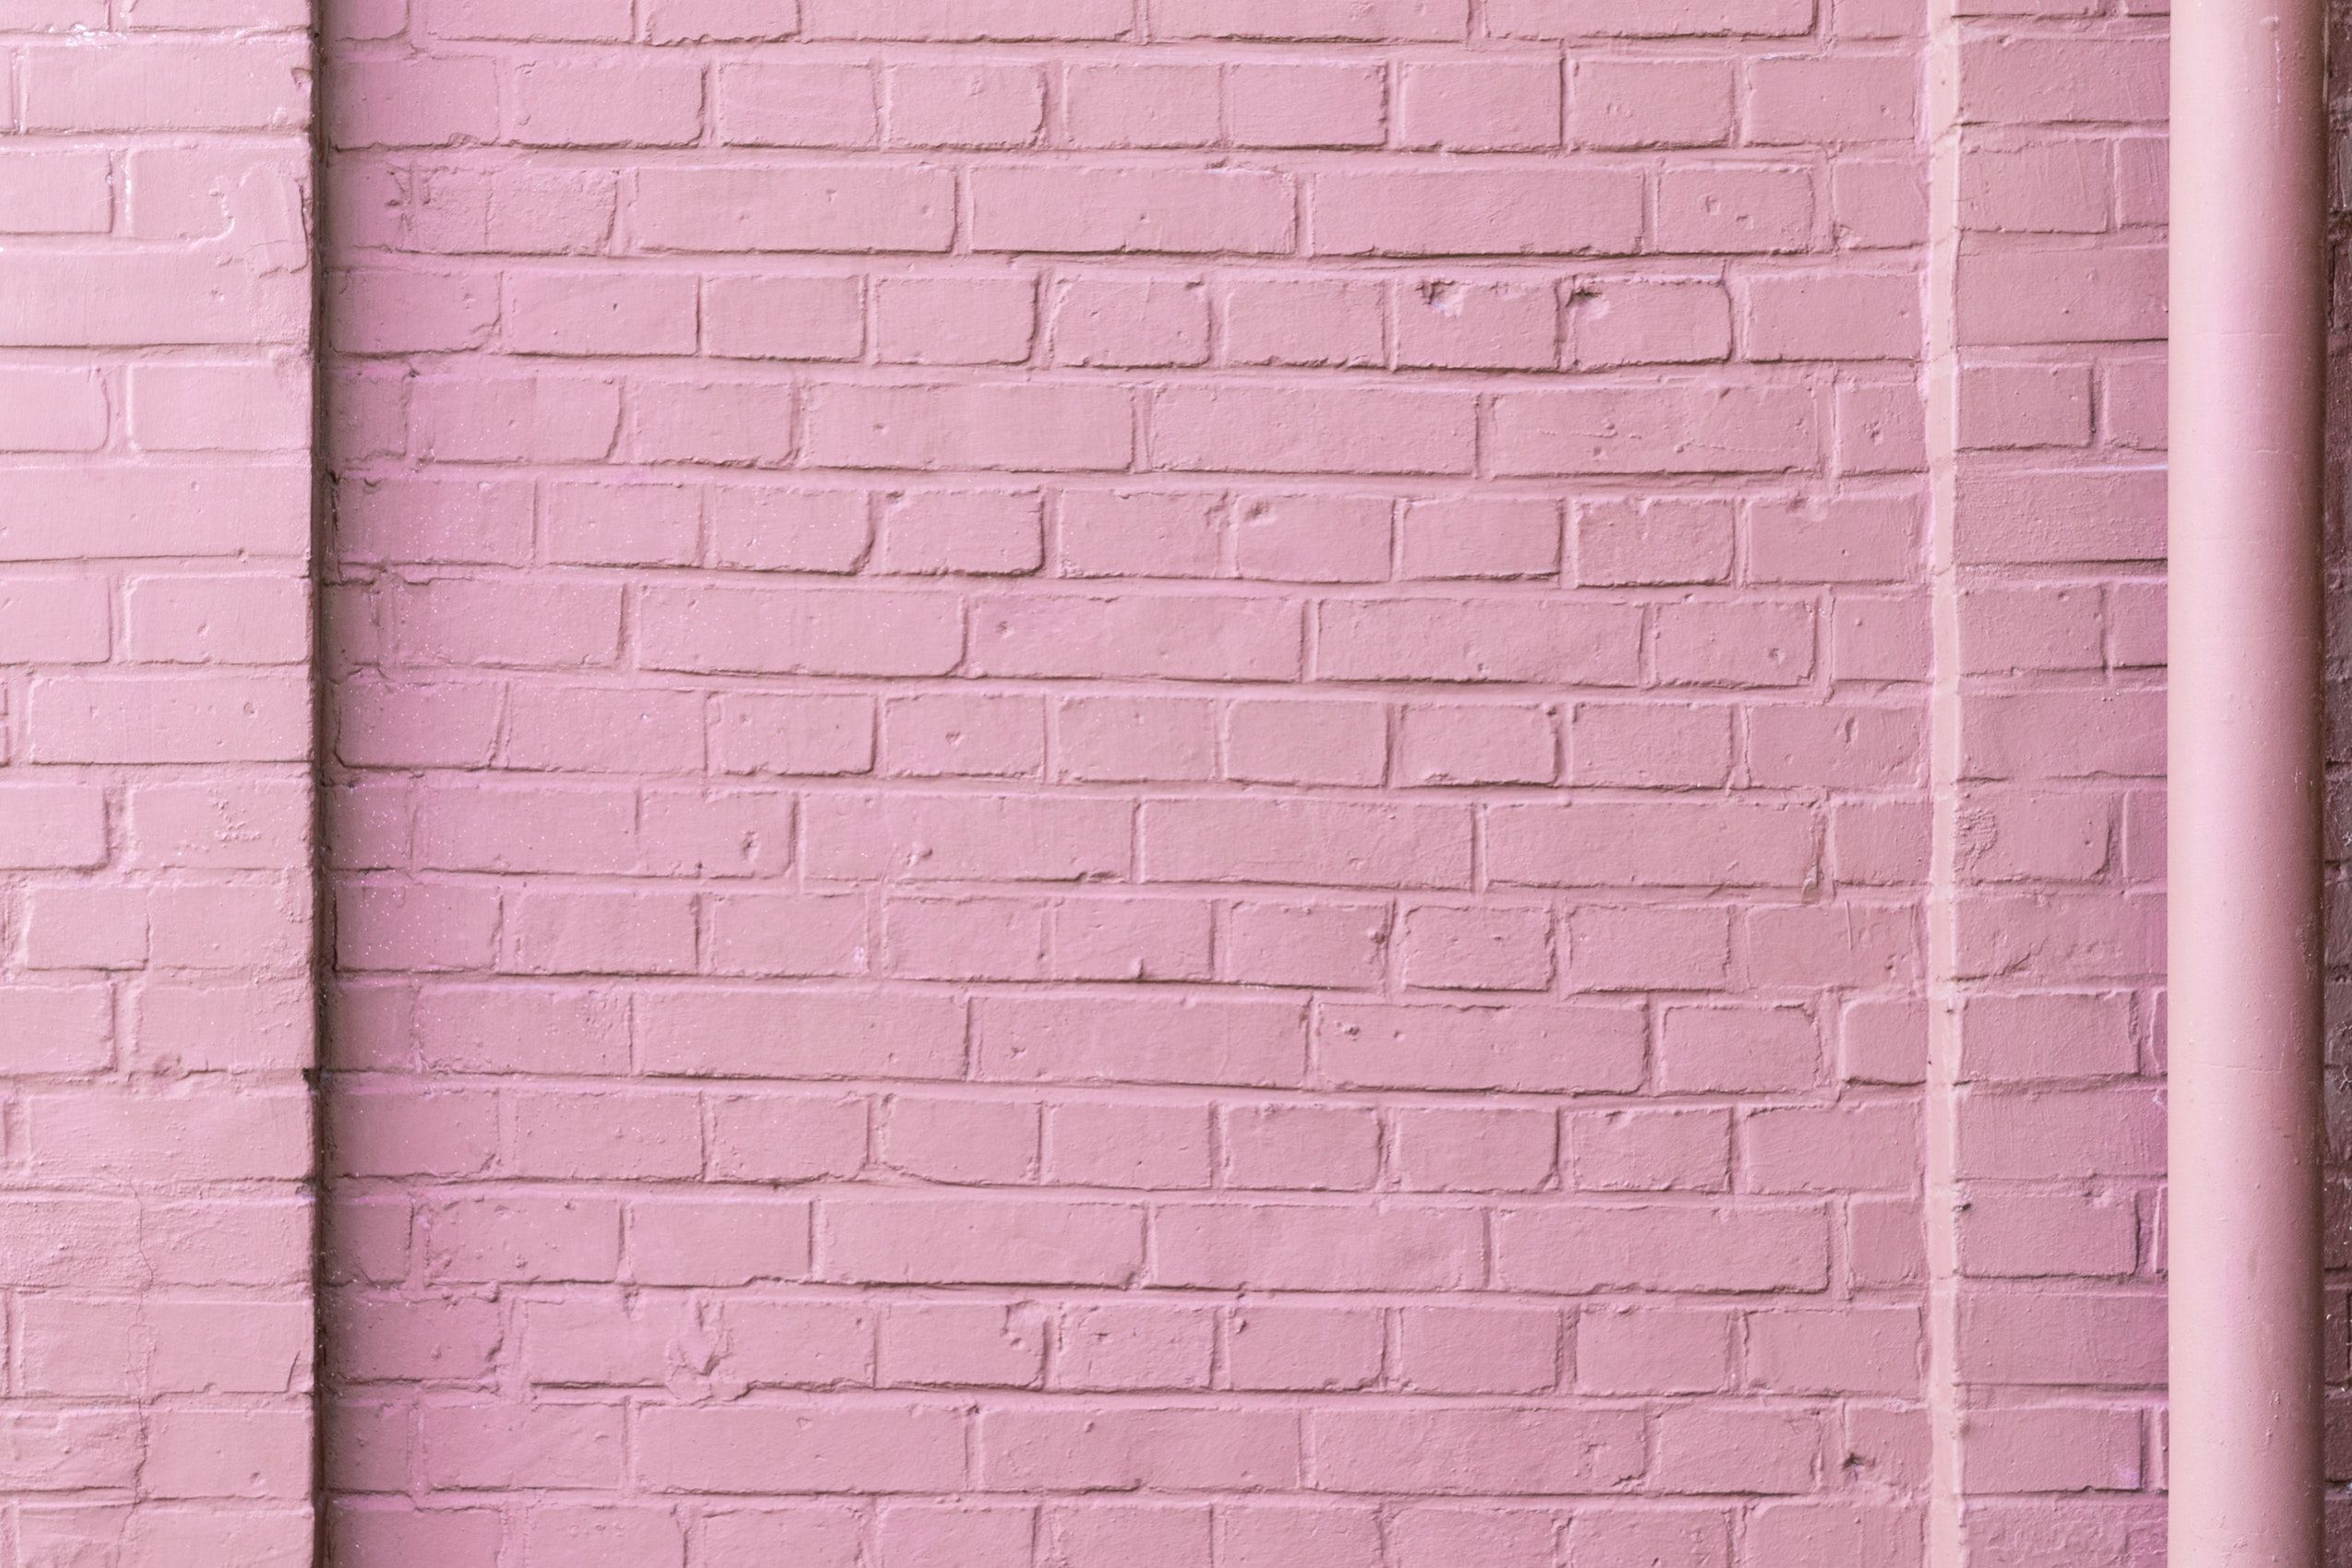 Pink Brick Wall And A Gutter Photo By Pawel Czerwinski Pawel Czerwinski On Unsplash Brick Images Pink Wallpaper Textured Background